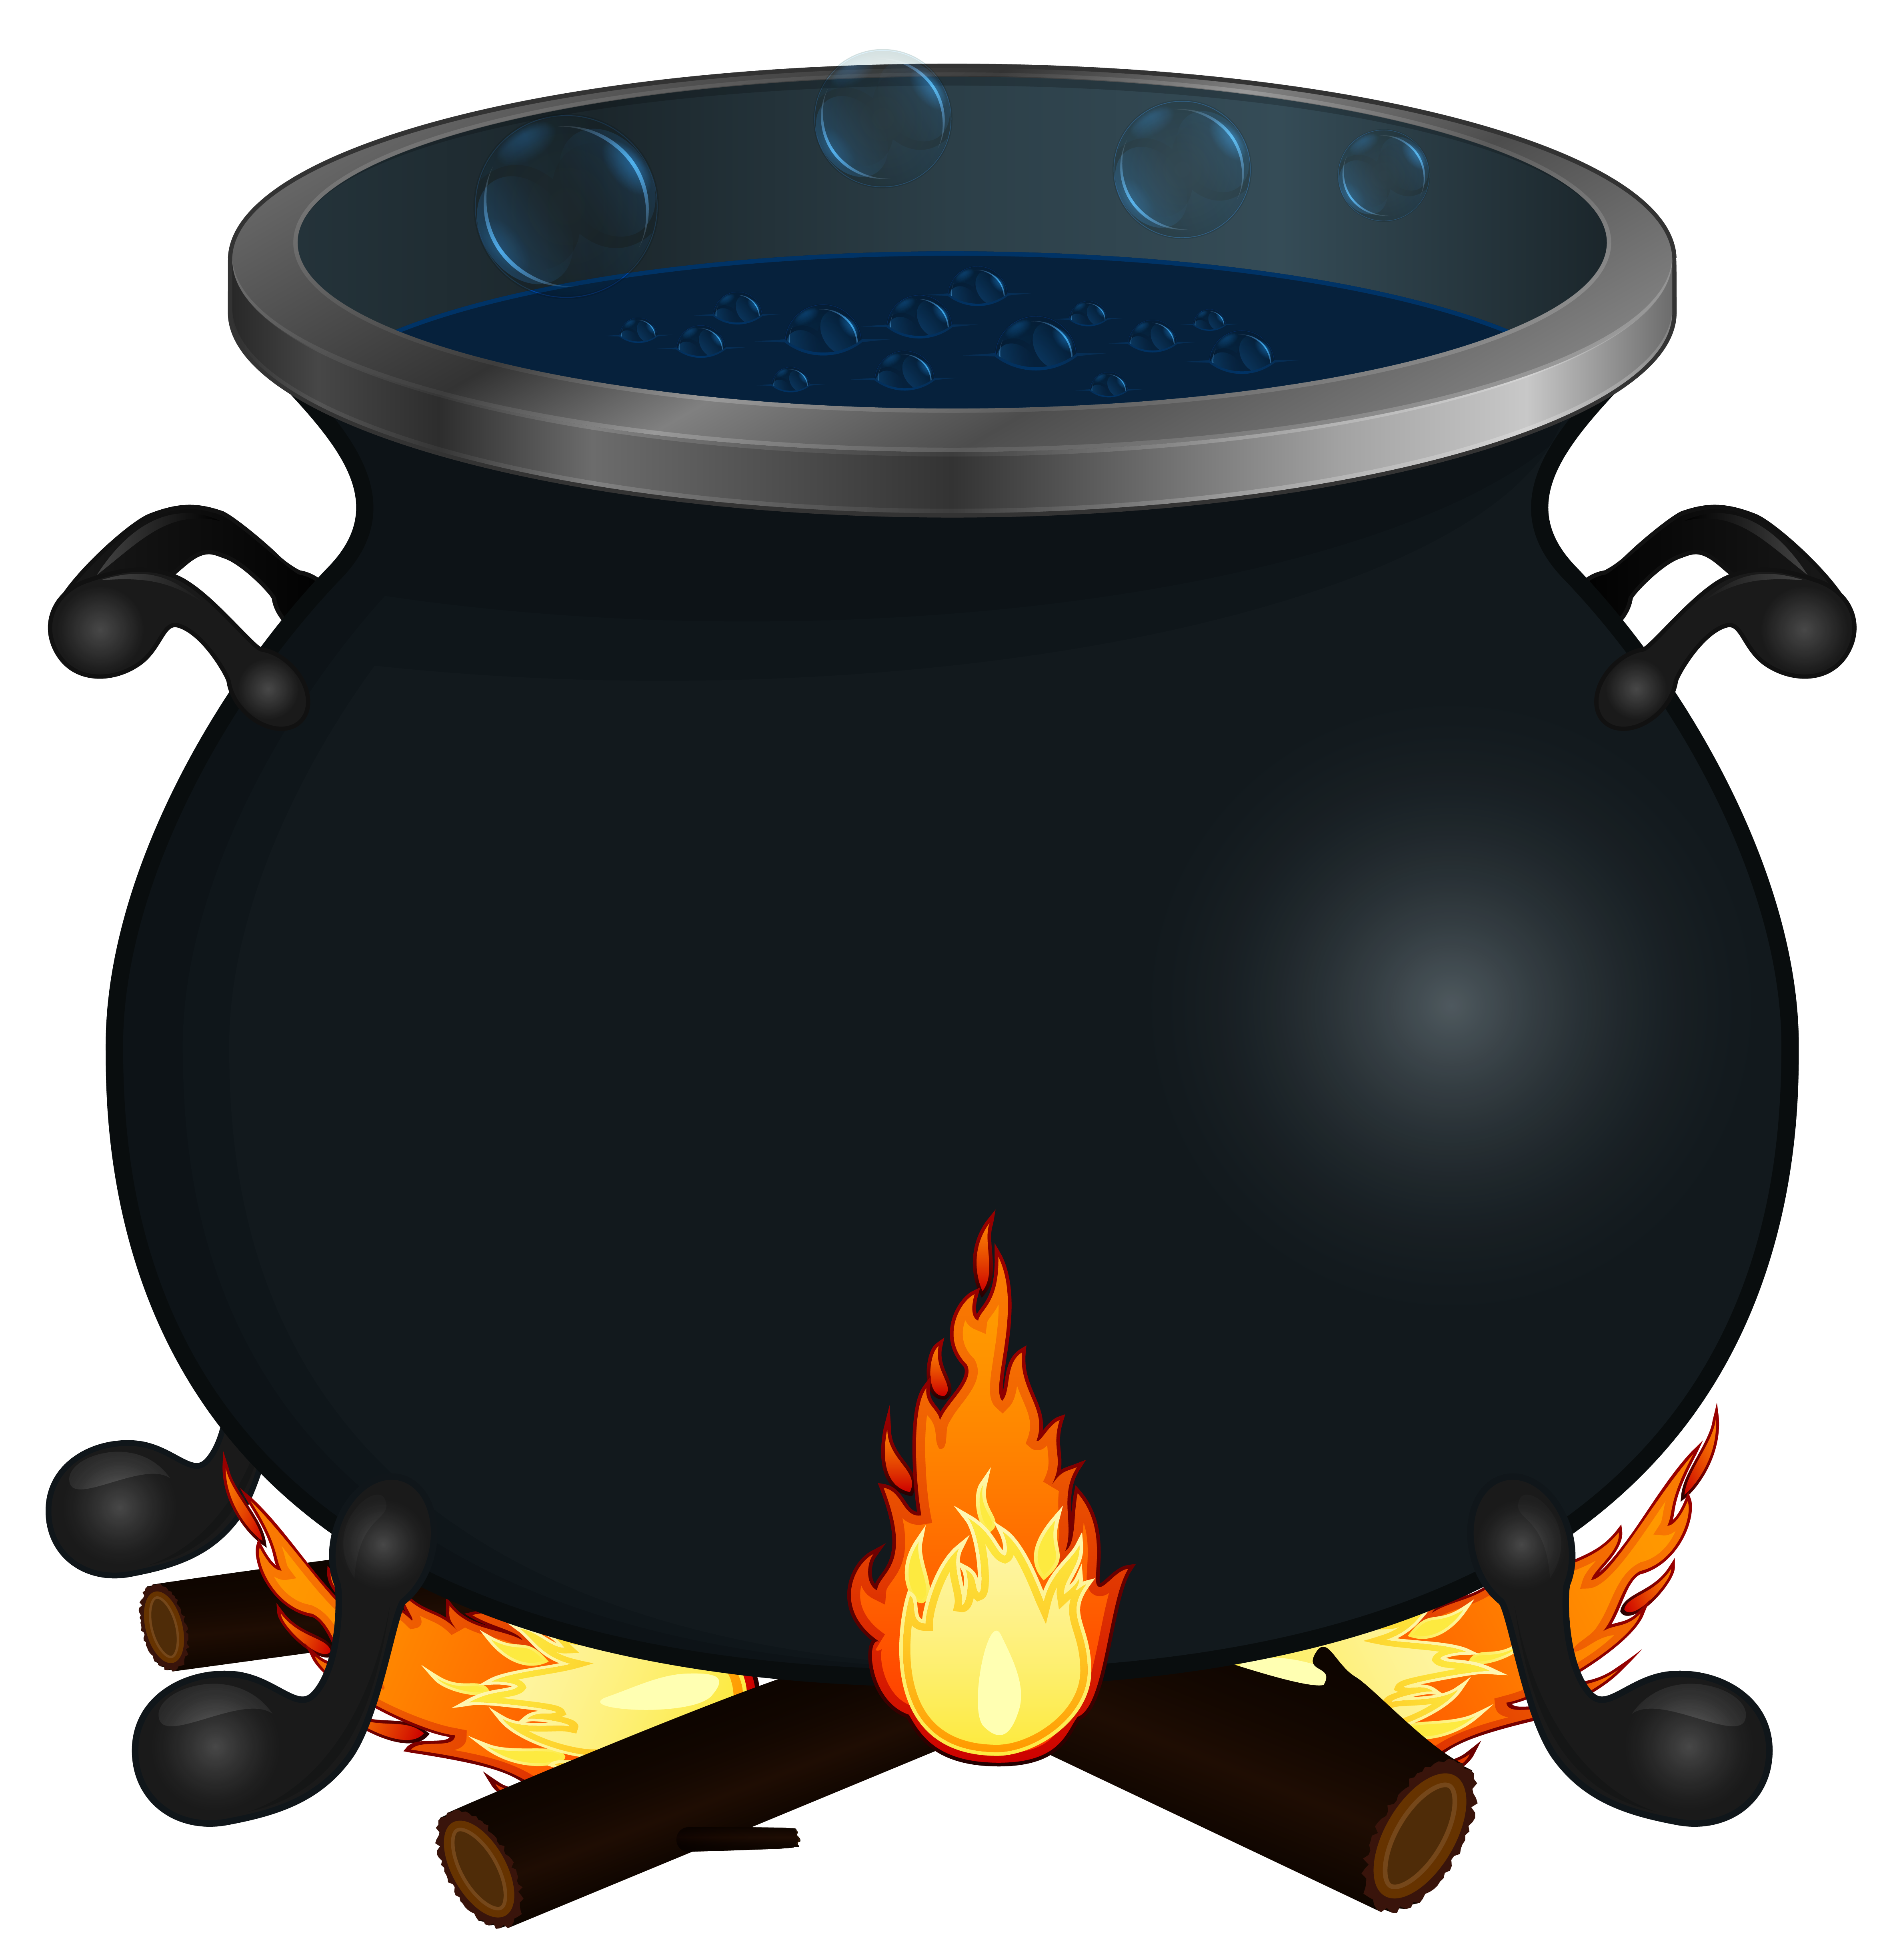 Halloween wallpaper clipart svg freeuse library Halloween Cauldron PNG Clipart Image | Gallery Yopriceville - High ... svg freeuse library